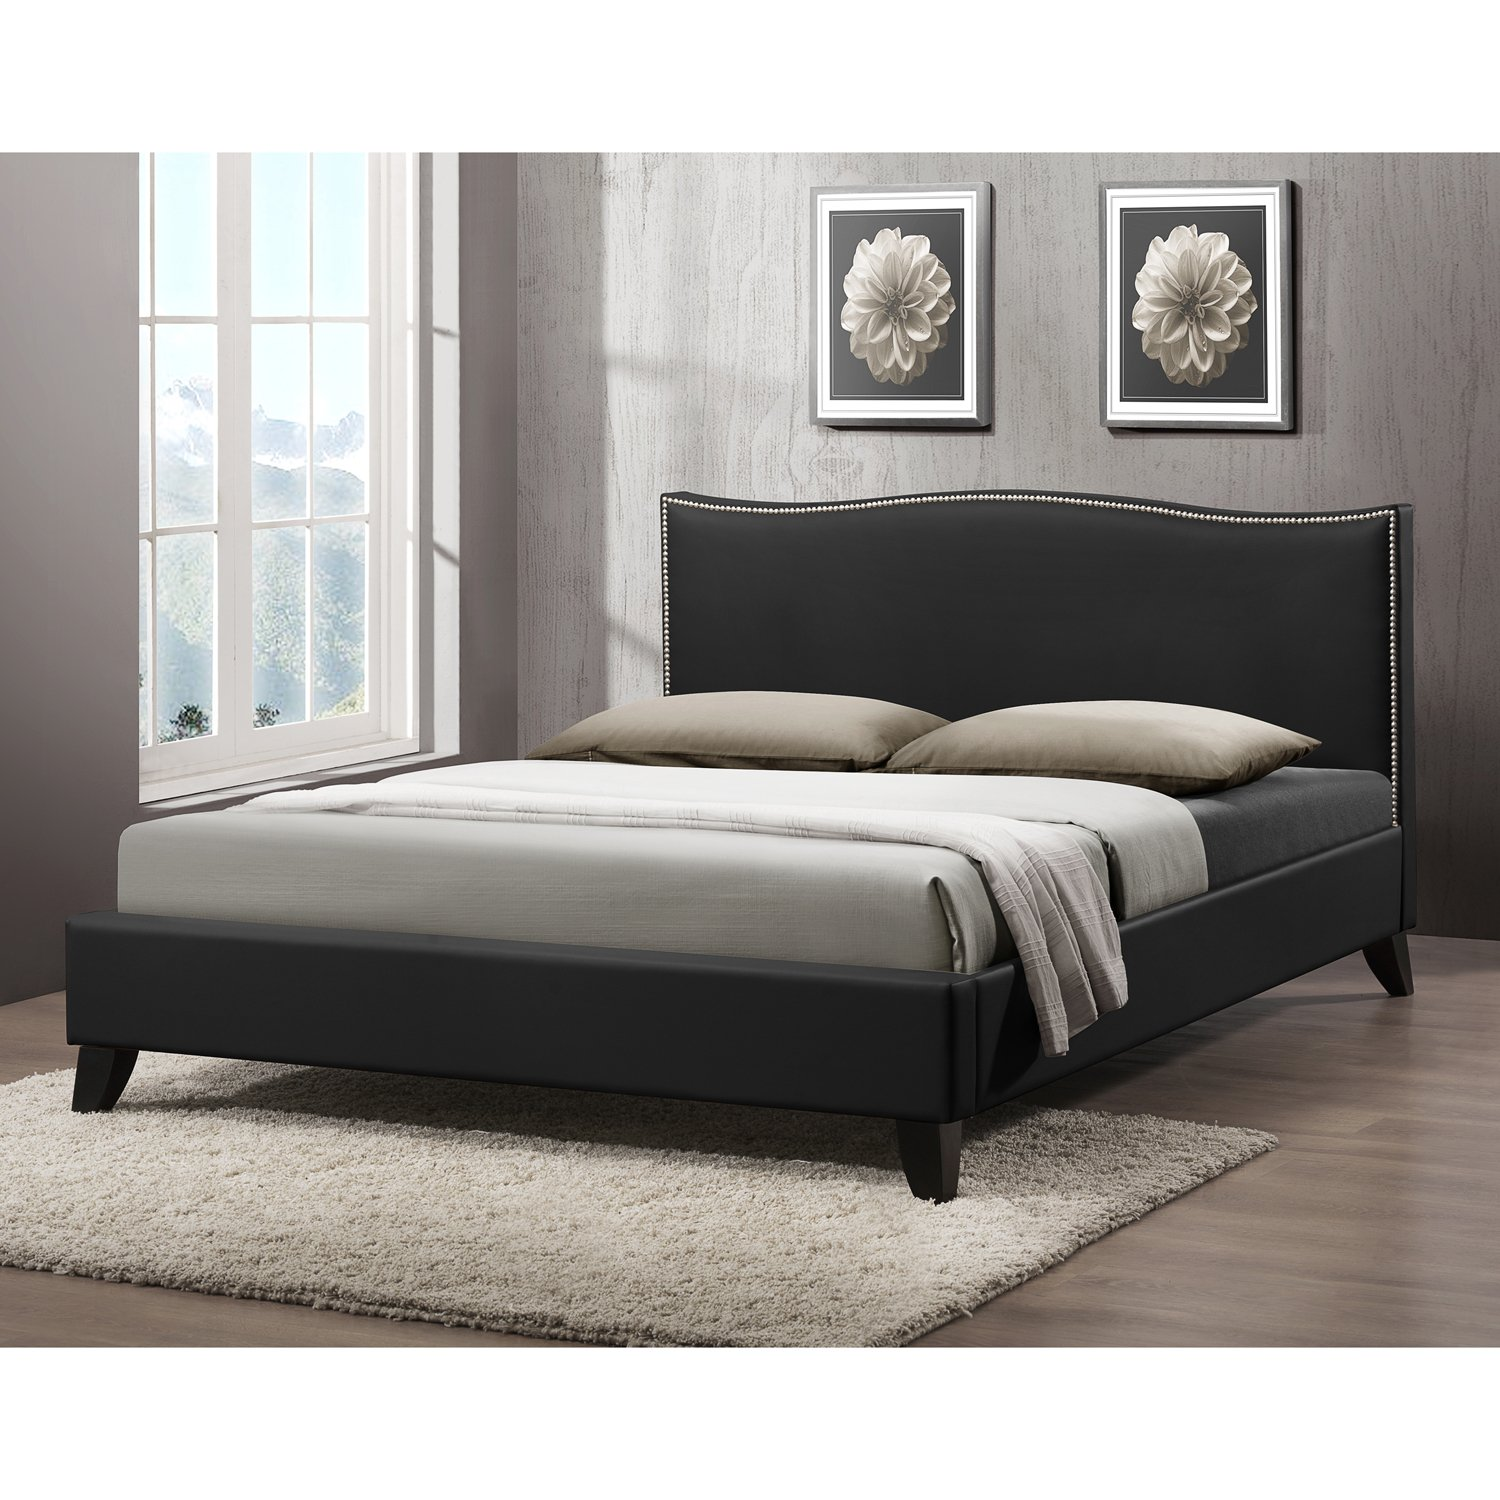 amazoncom baxton studio cfqueenblack battersby modern bed  - amazoncom baxton studio cfqueenblack battersby modern bed withupholstered headboard queen black kitchen  dining